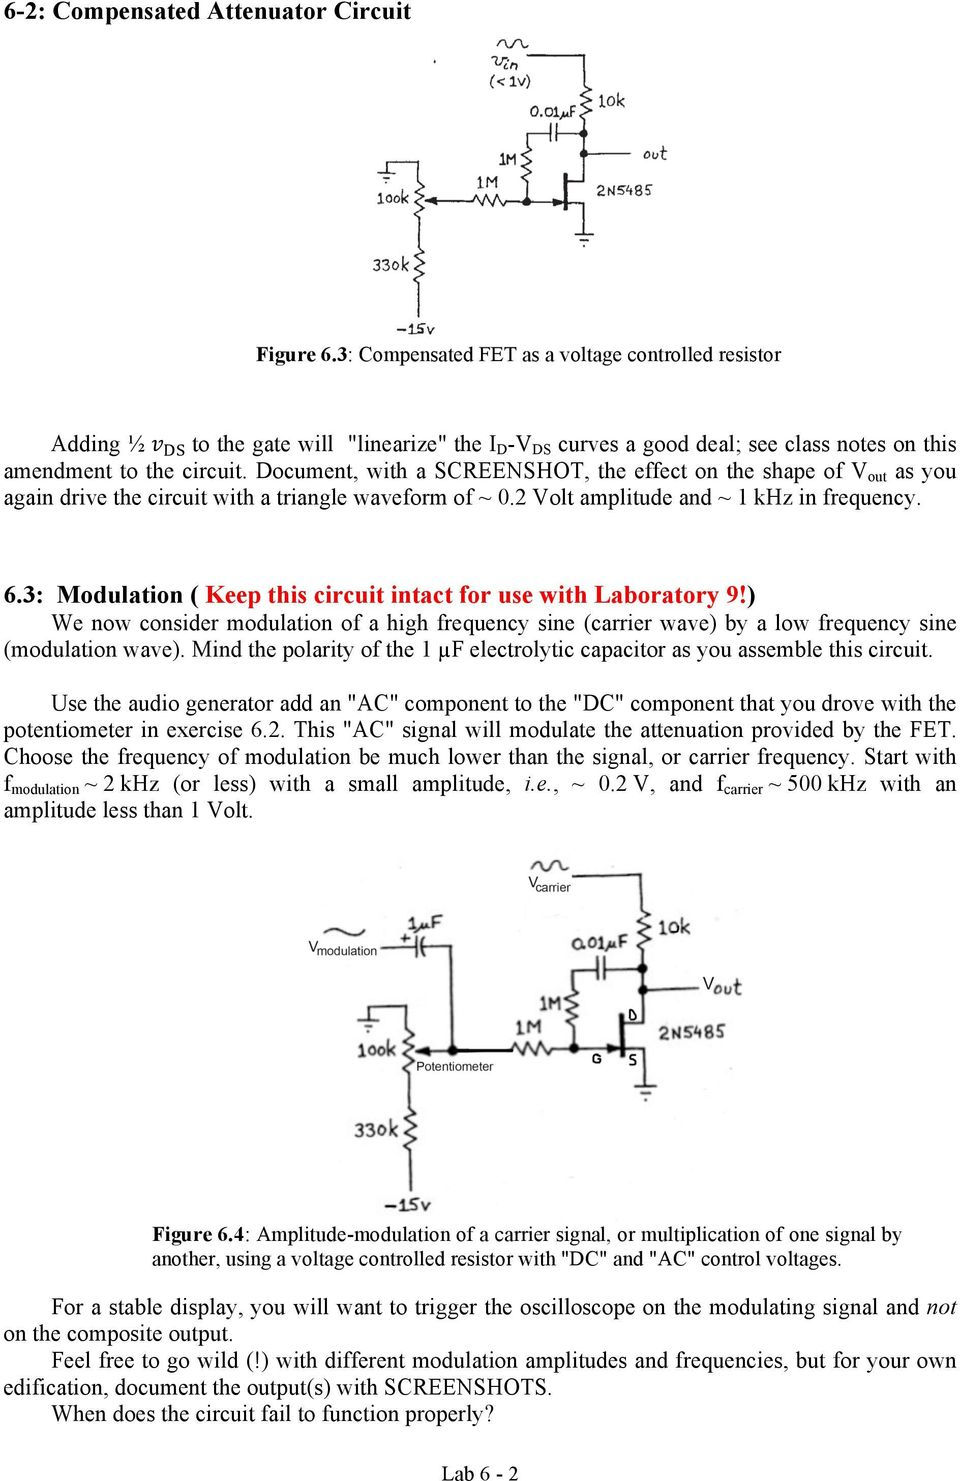 Physics 120 Lab 6 Field Effect Transistors Ohmic Region Pdf Voltagecontrolled Amplifier Using Mosfet Gain Control Circuit Document With A Screenshot The On Shape Of V Out As You